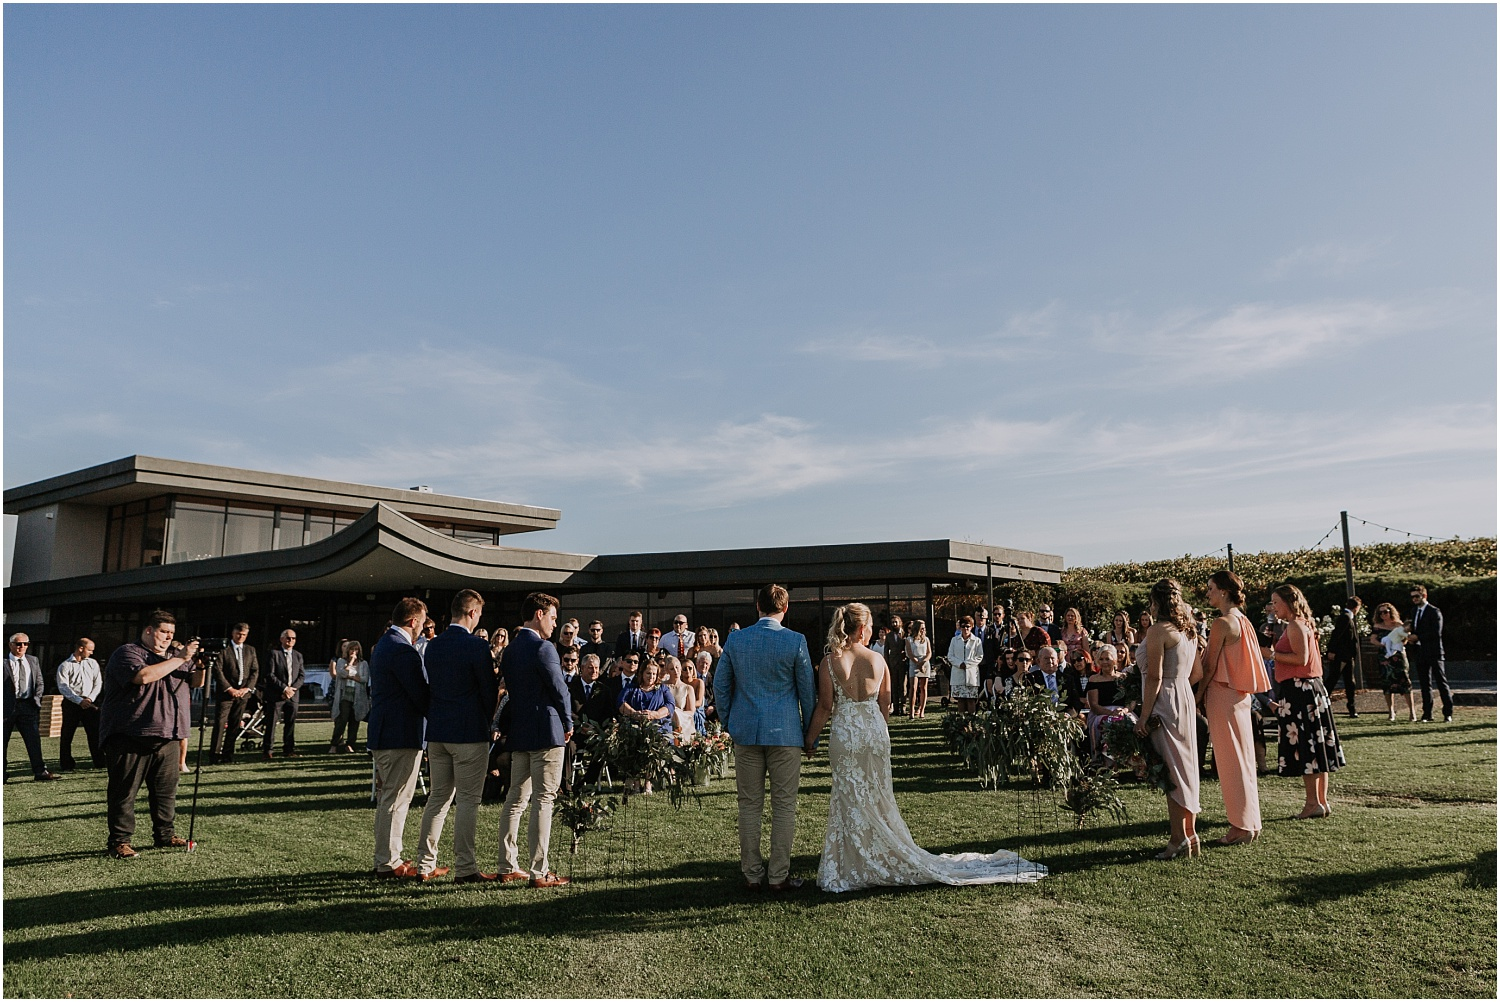 Lacey and Warwick's Yarra Valley winery wedding at Vines Helens Hill._0051.jpg